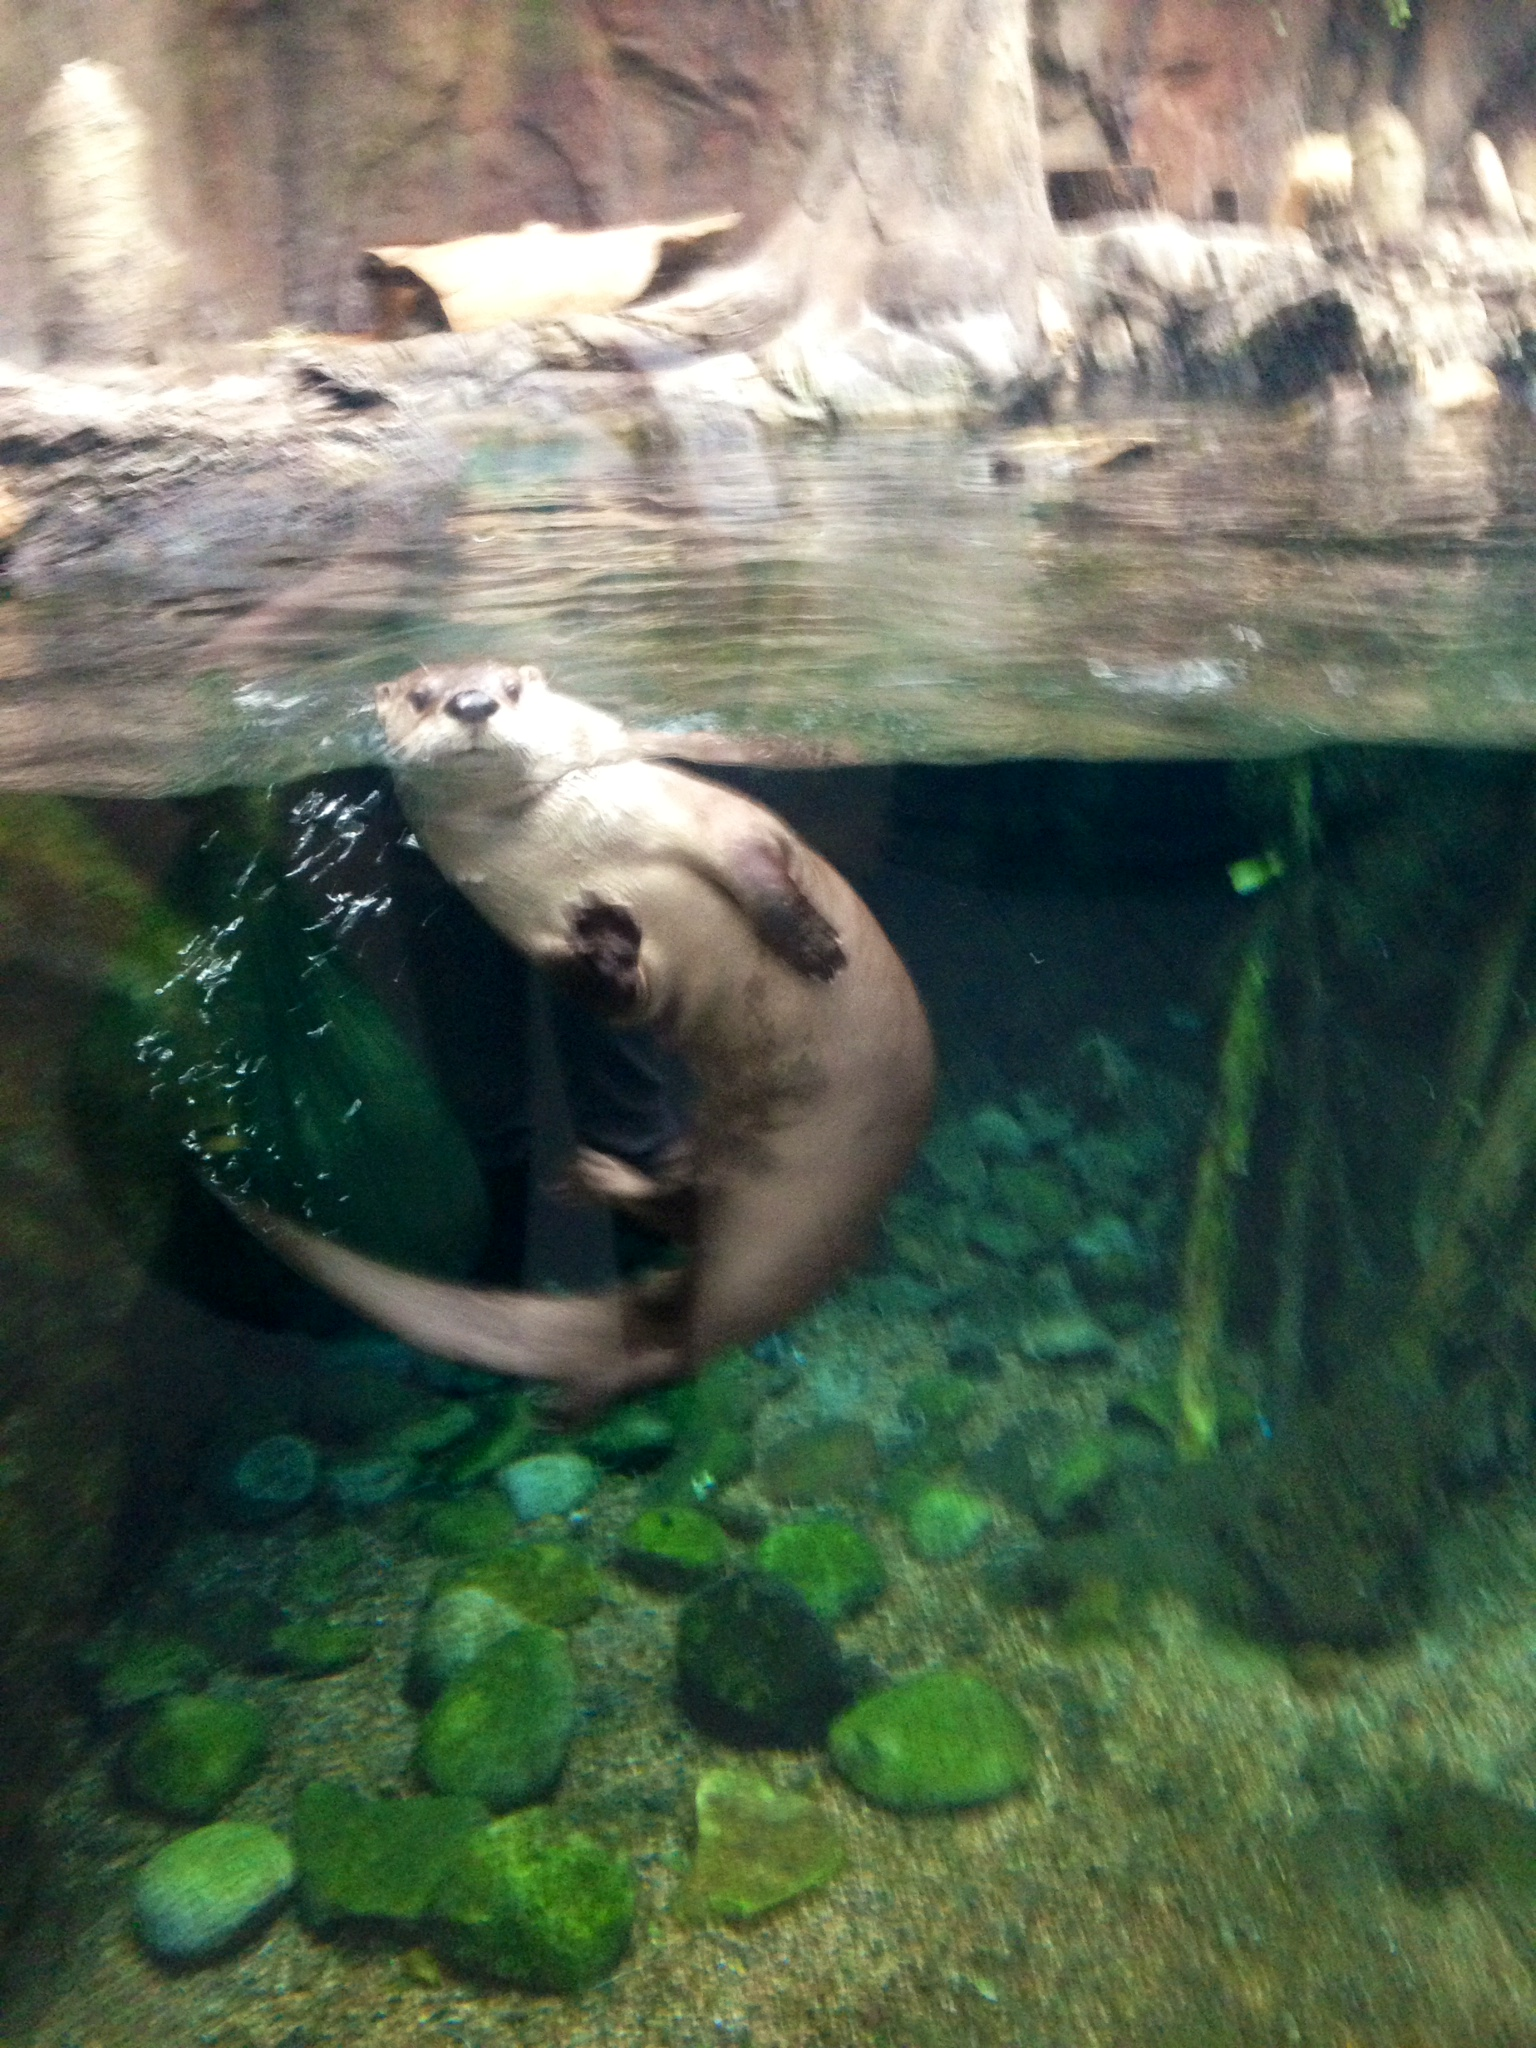 Otter Is Very Interested in What Aquarium Staff Are Up To 2